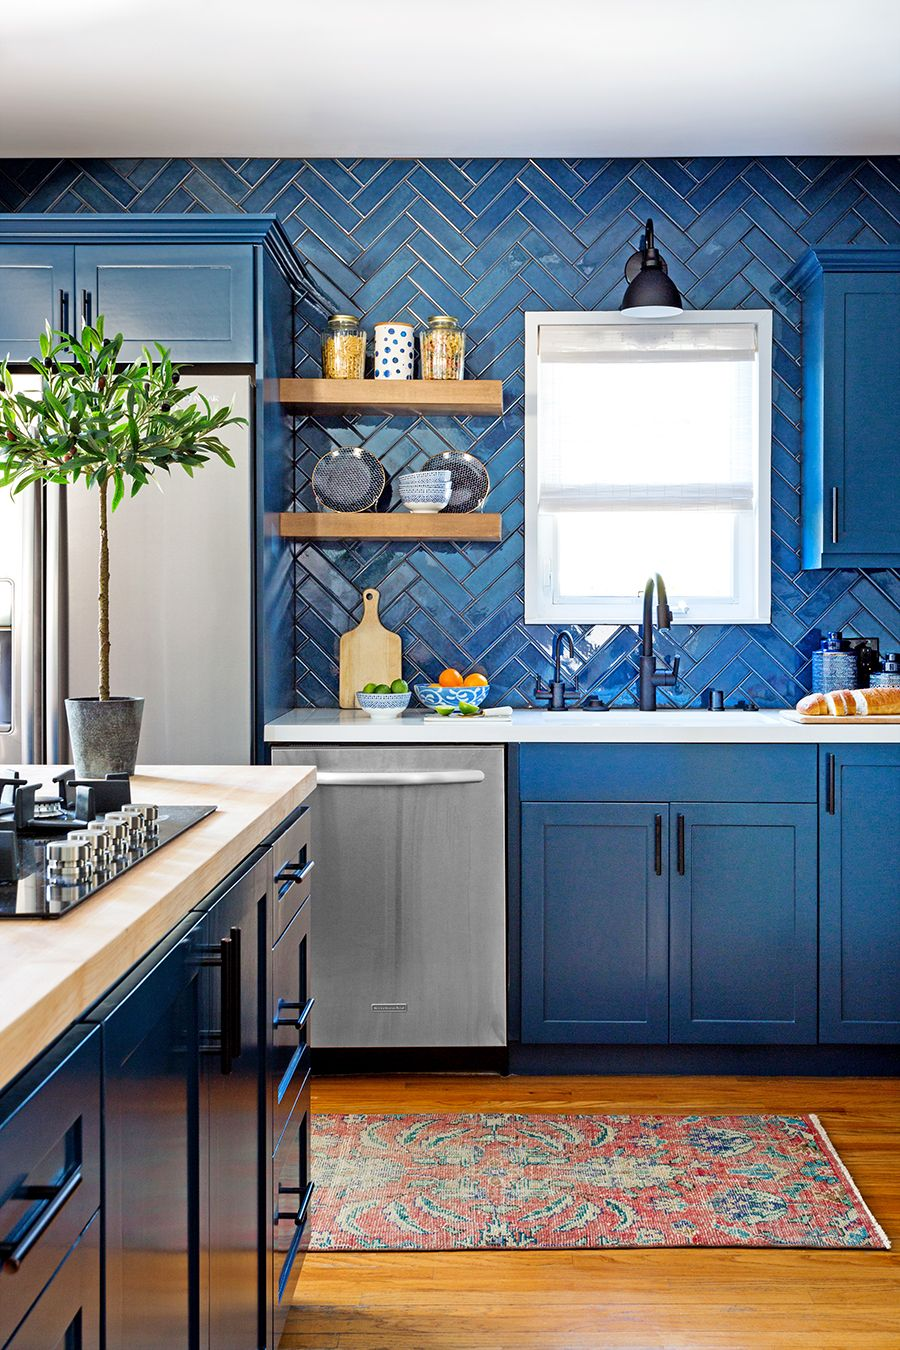 5 Best Kitchen Backsplash Ideas - Tile Designs for Kitchen